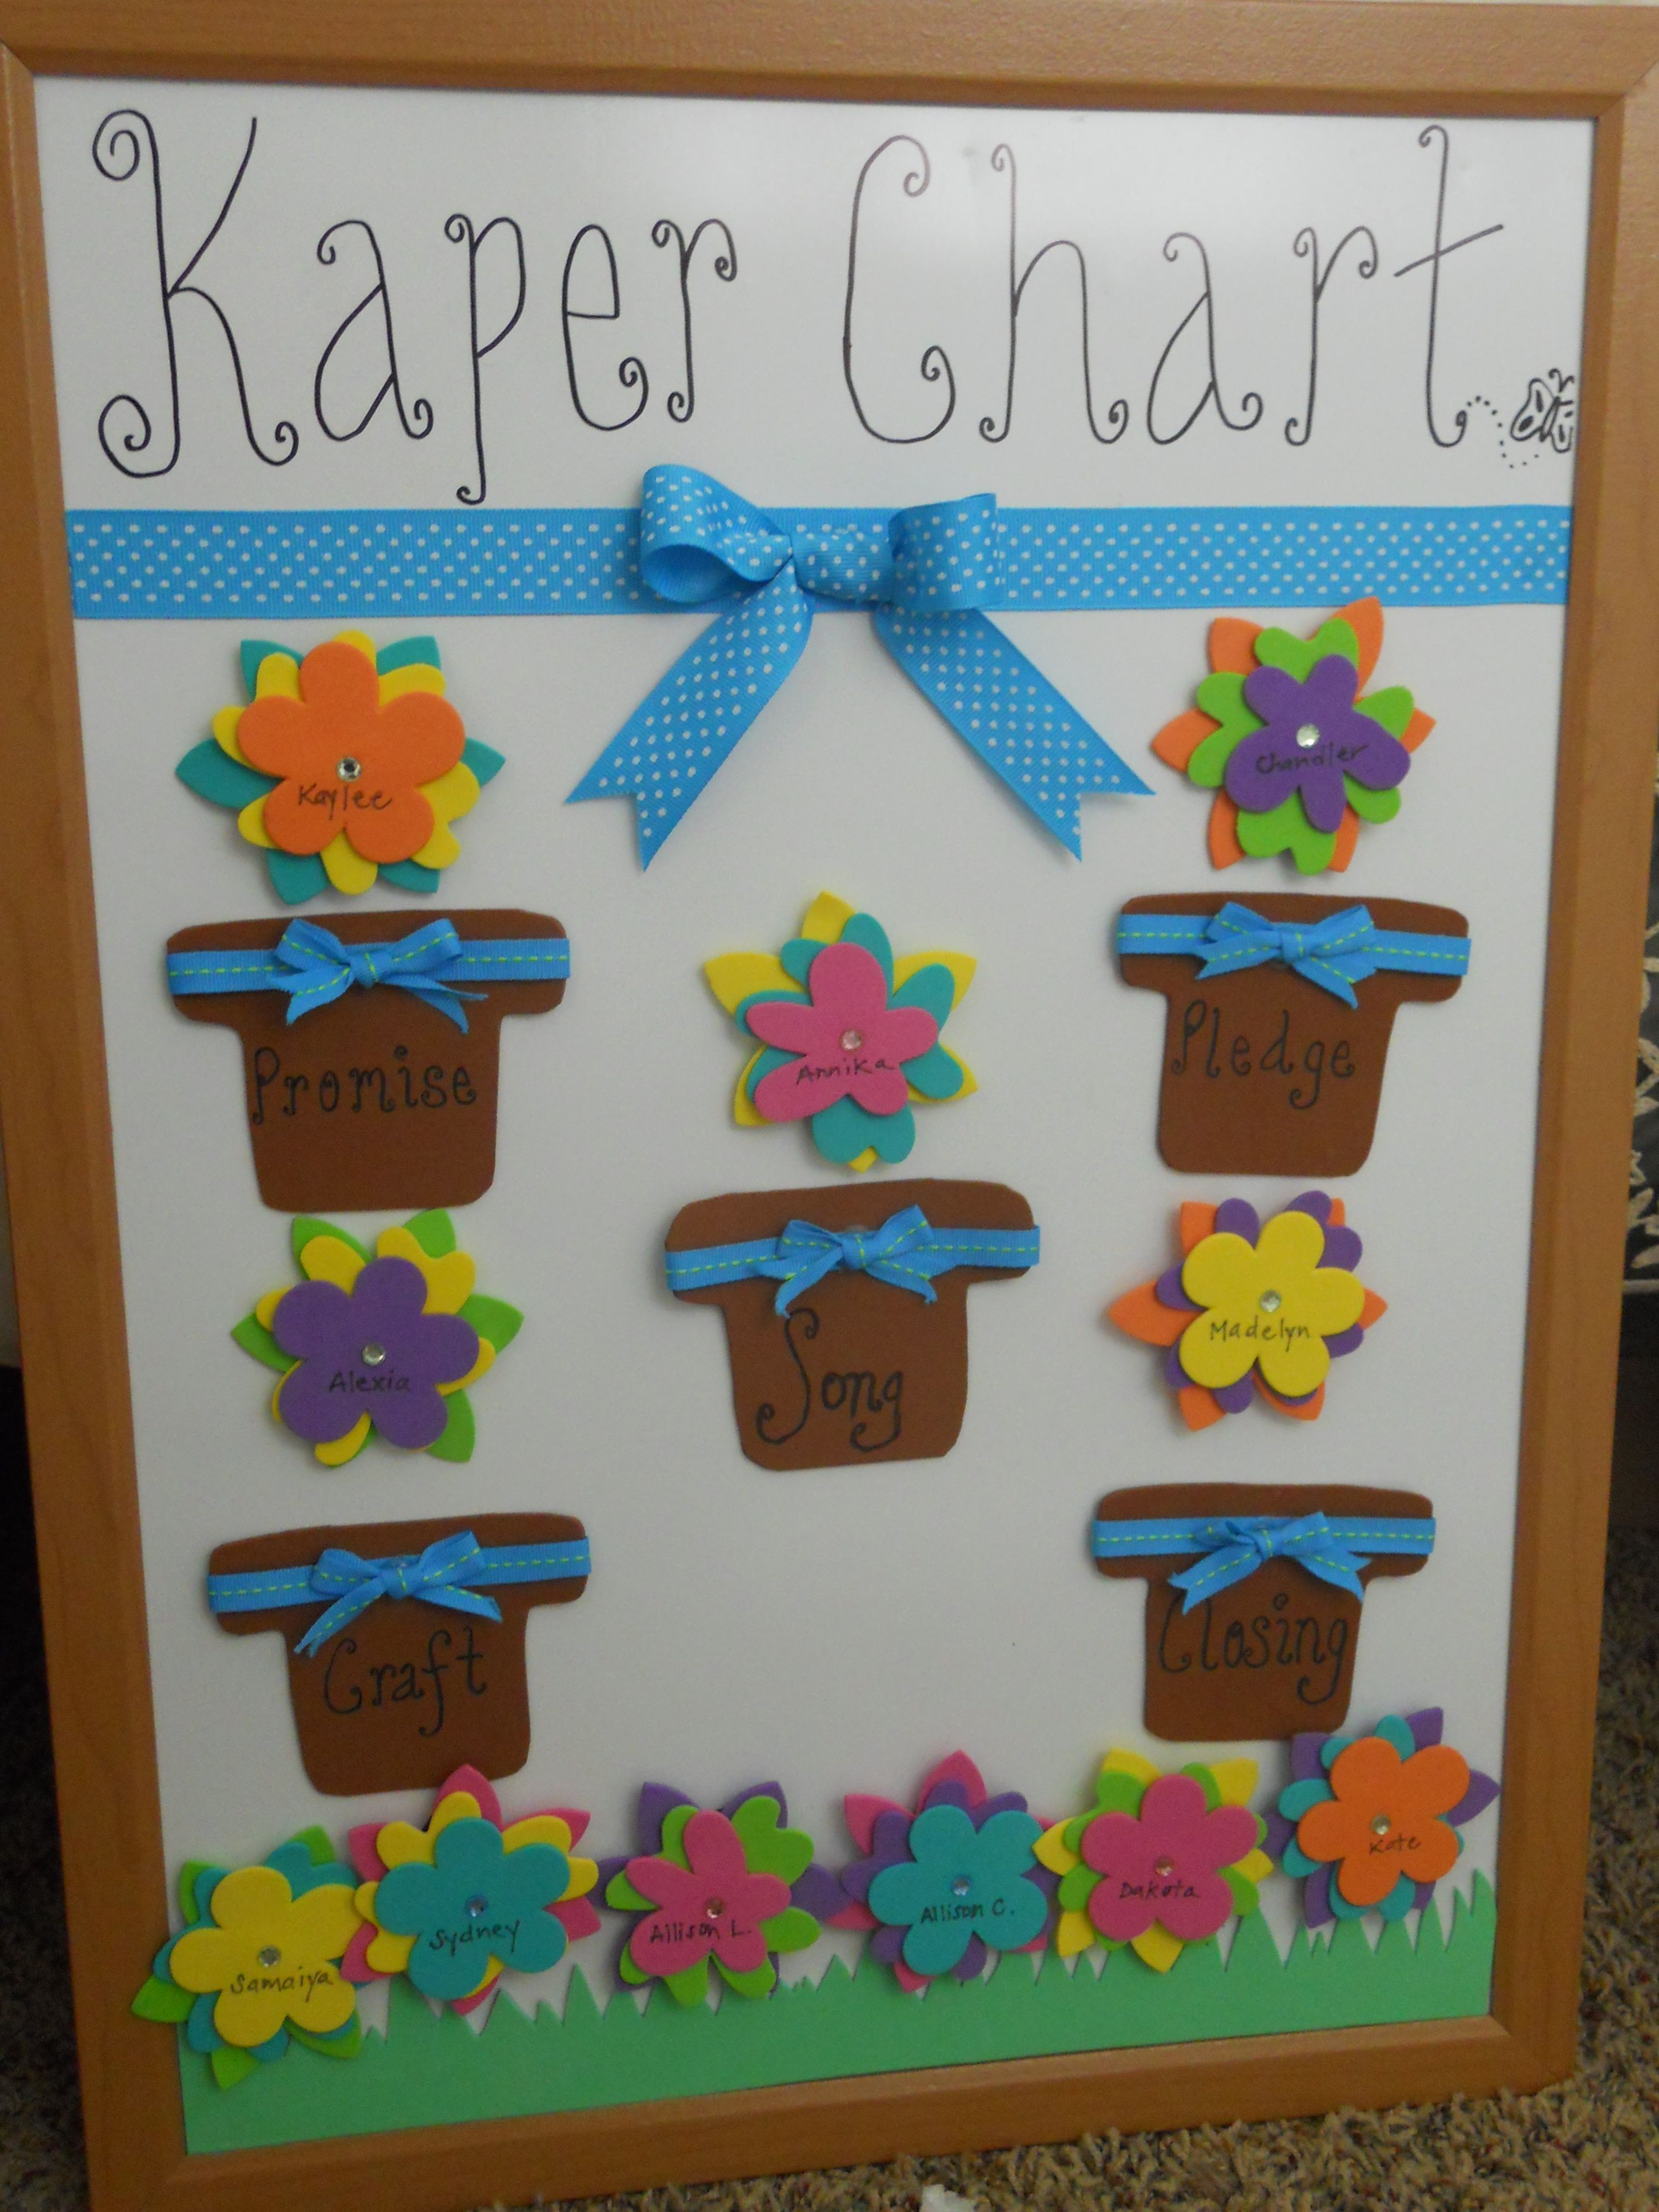 Girl scout daisy kaper chart make little flower pots with daisy girl scout daisy kaper chart make little flower pots with daisy flower jobs ass izmirmasajfo